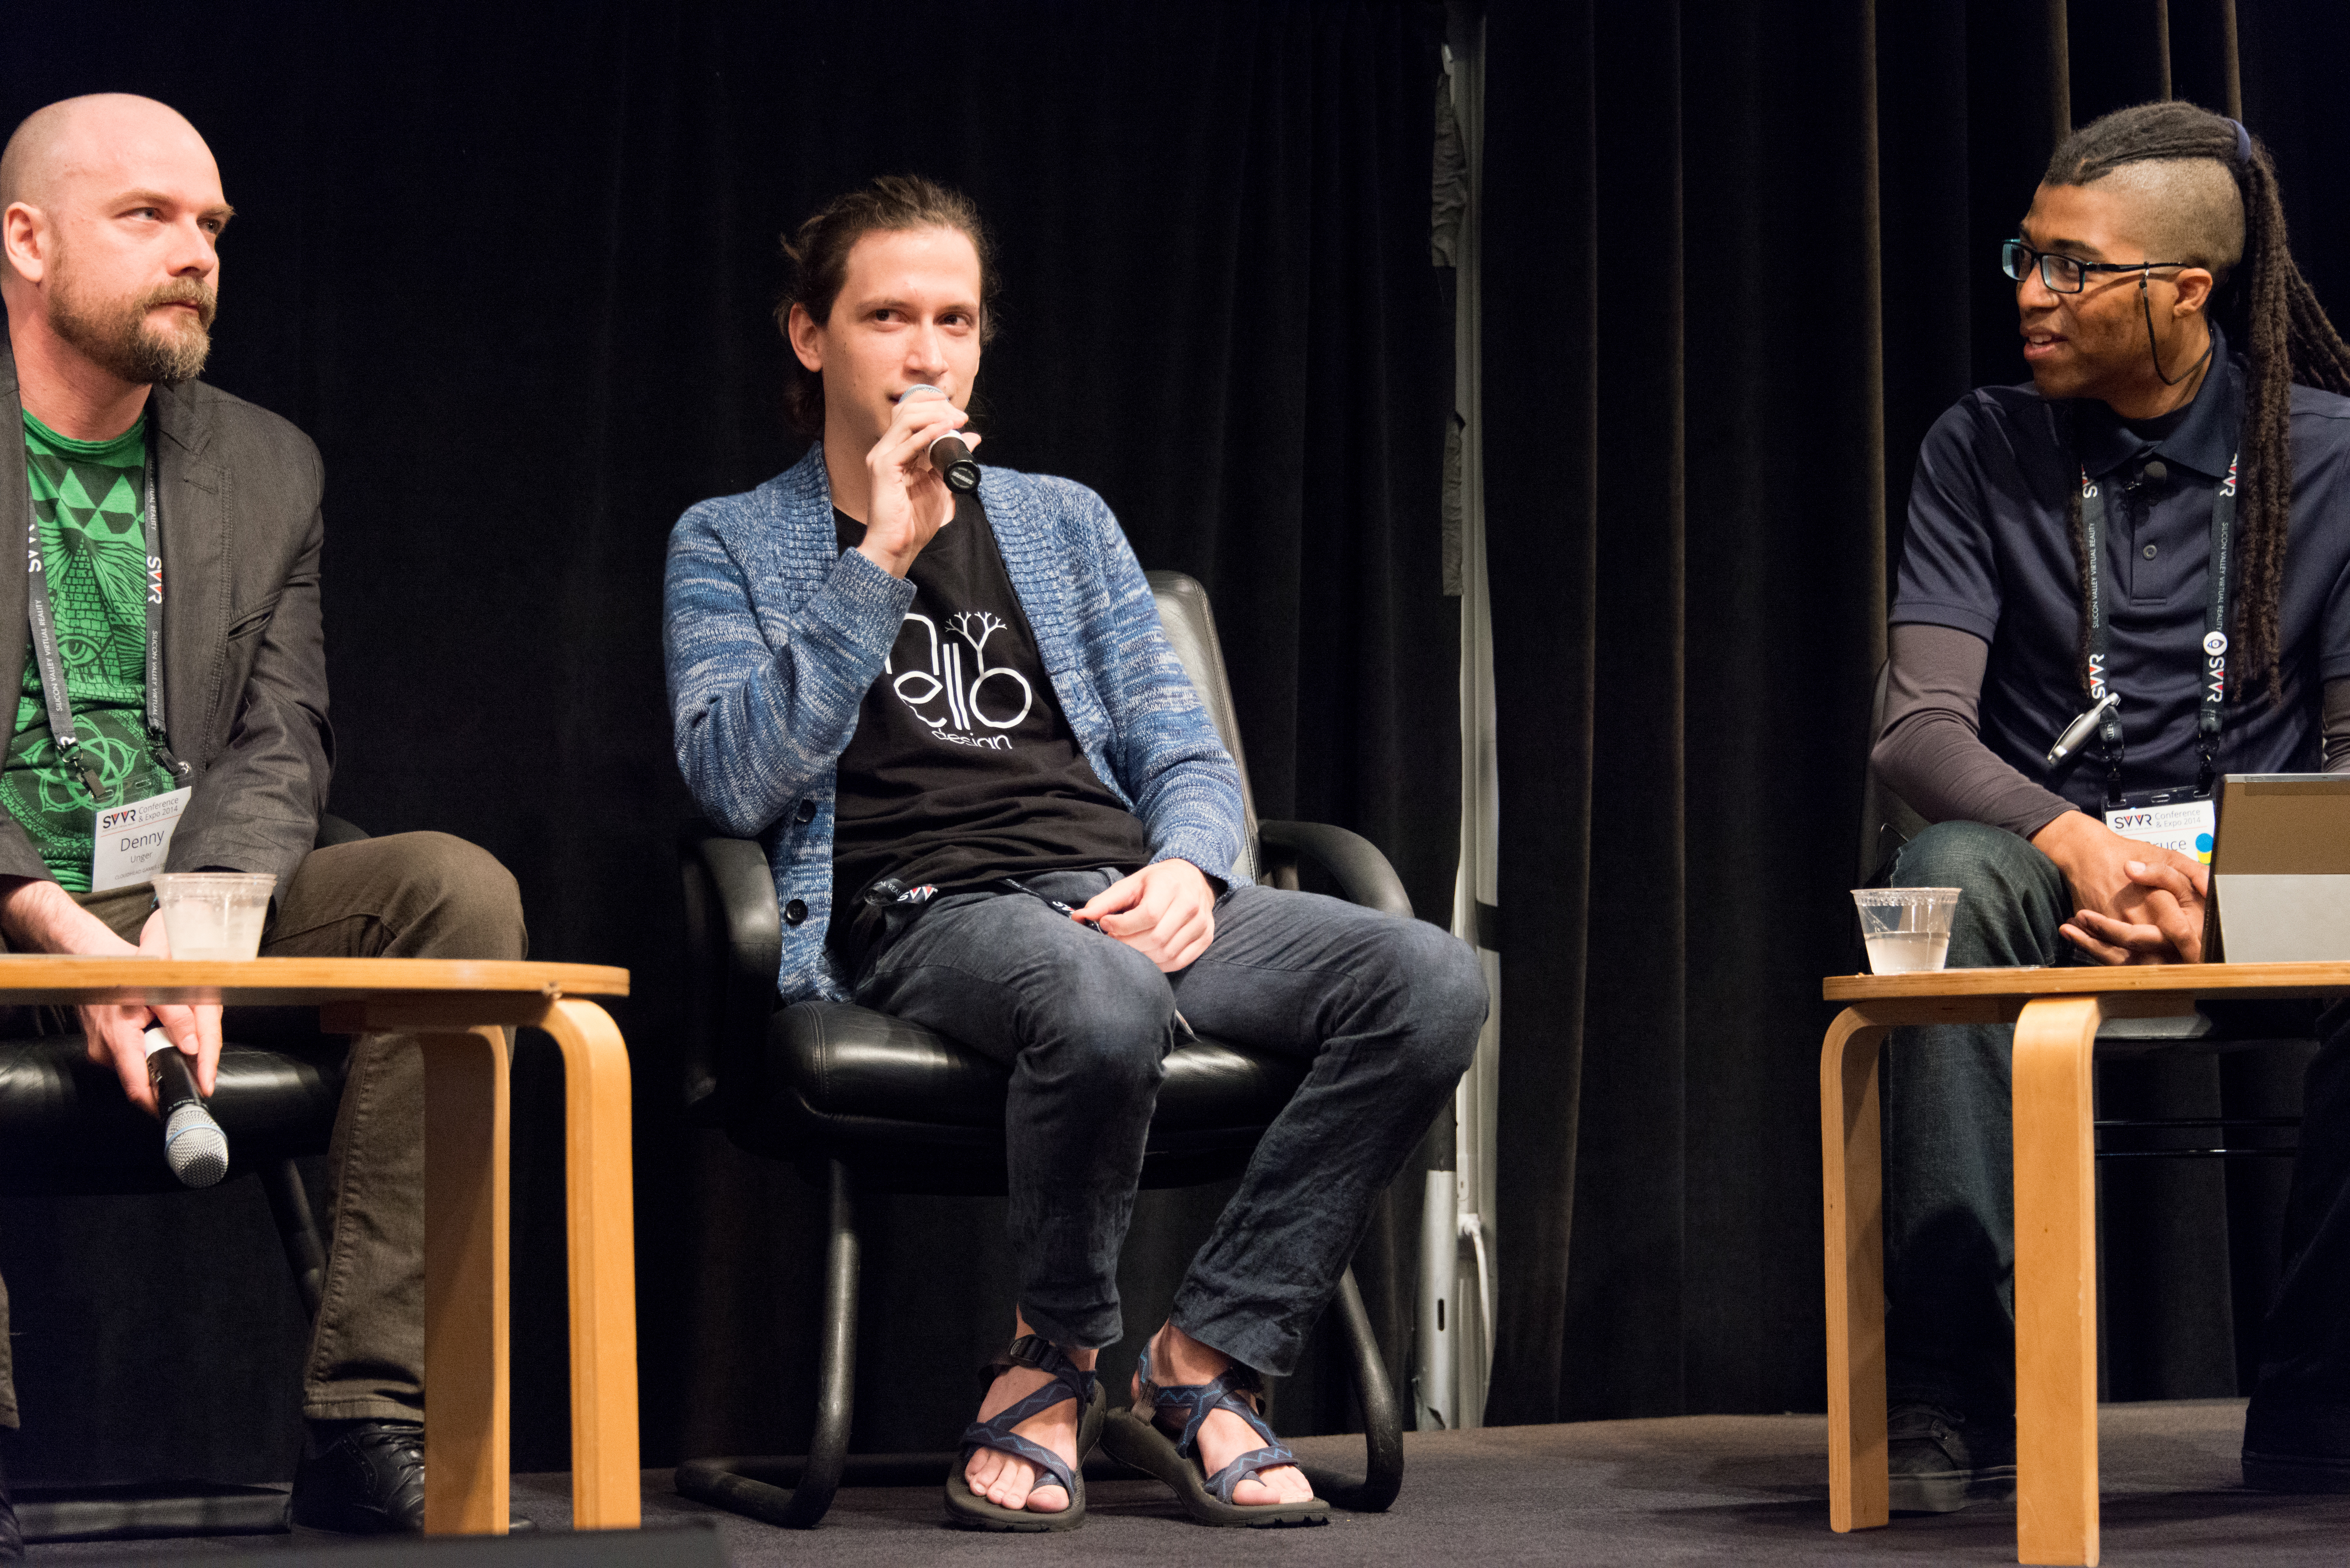 Aaron Lemke (Unello Design) discussing at indie dev panel at SVVR (full body view looking forward at audience with Denny Unger of Cloudhead Games on left and Cymatic Bruce on right), Indoor, People, Speaker, SVVR, HQ Photo